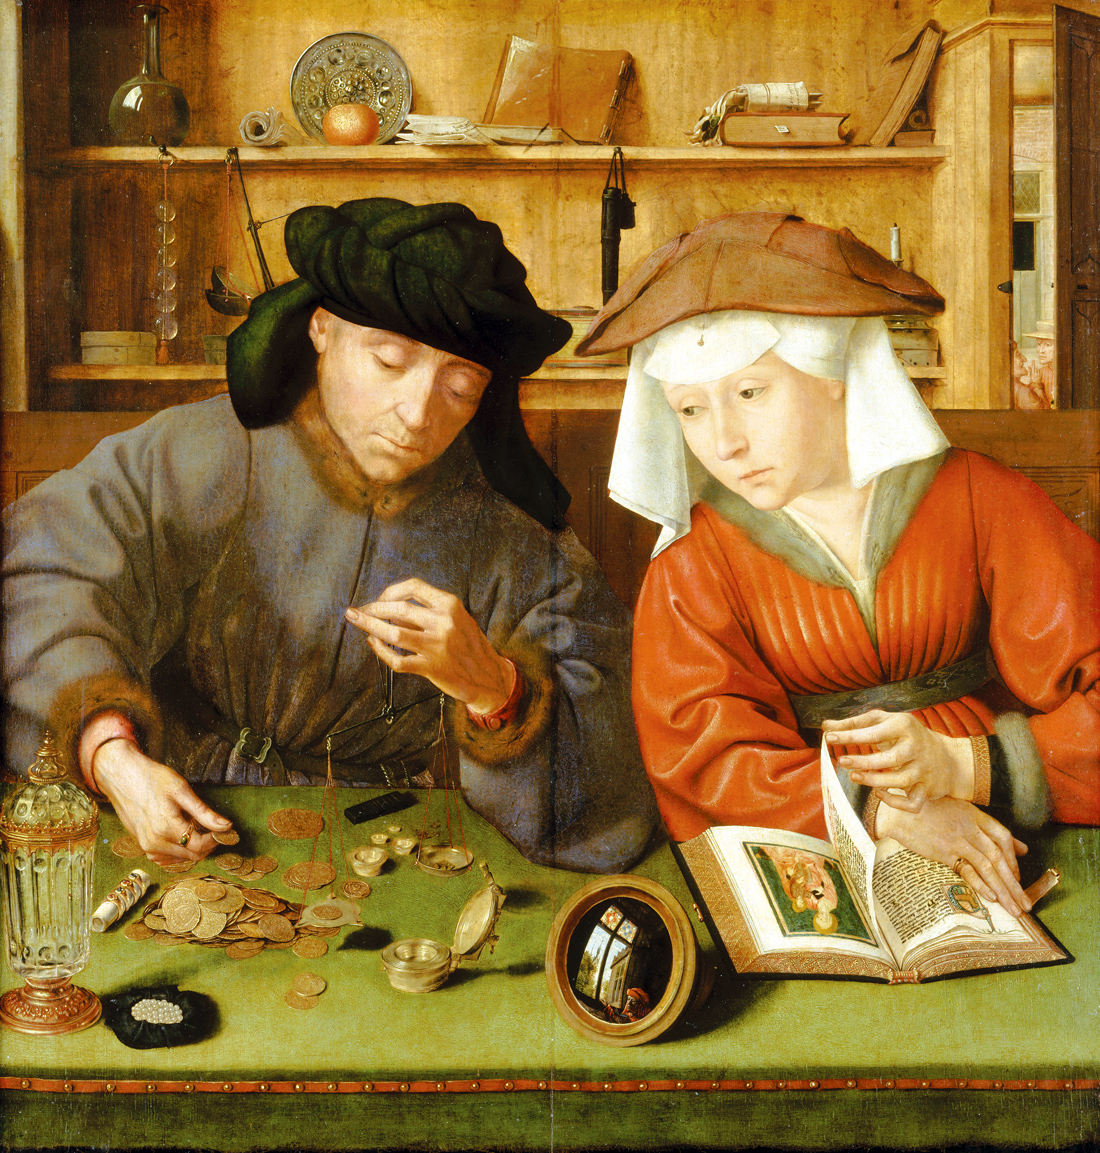 The Money-lender and His Wife, by Quentin Metsys, 1514. Louvre Museum, Paris, France.